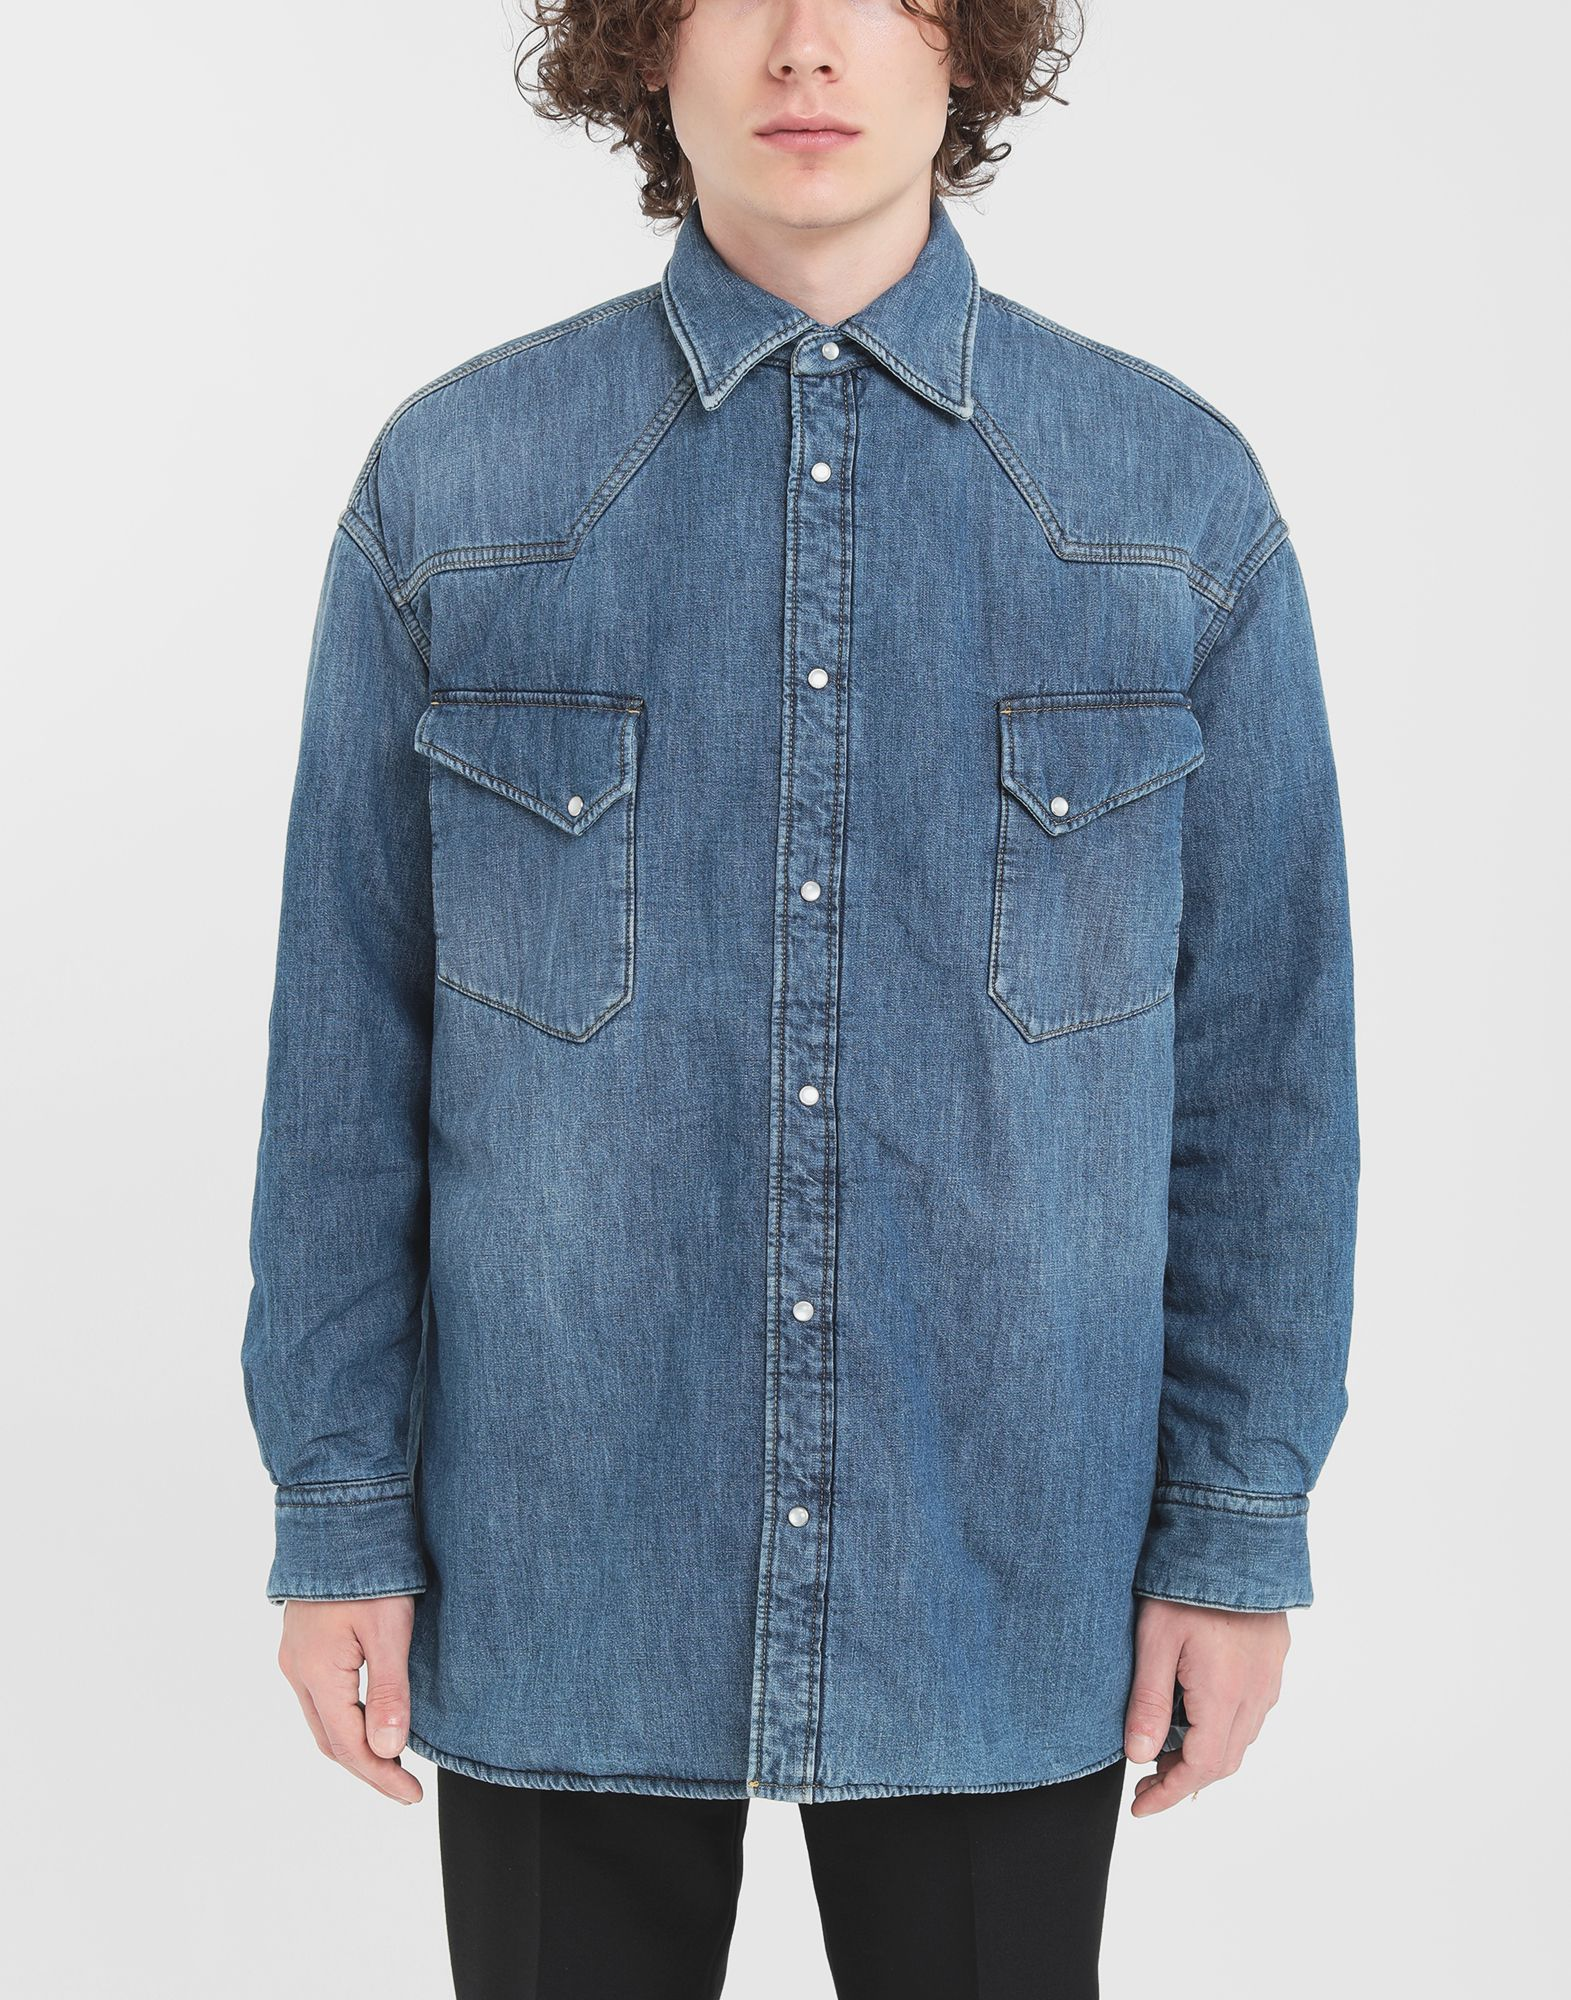 MAISON MARGIELA Oversized denim shirt Long sleeve shirt Man r